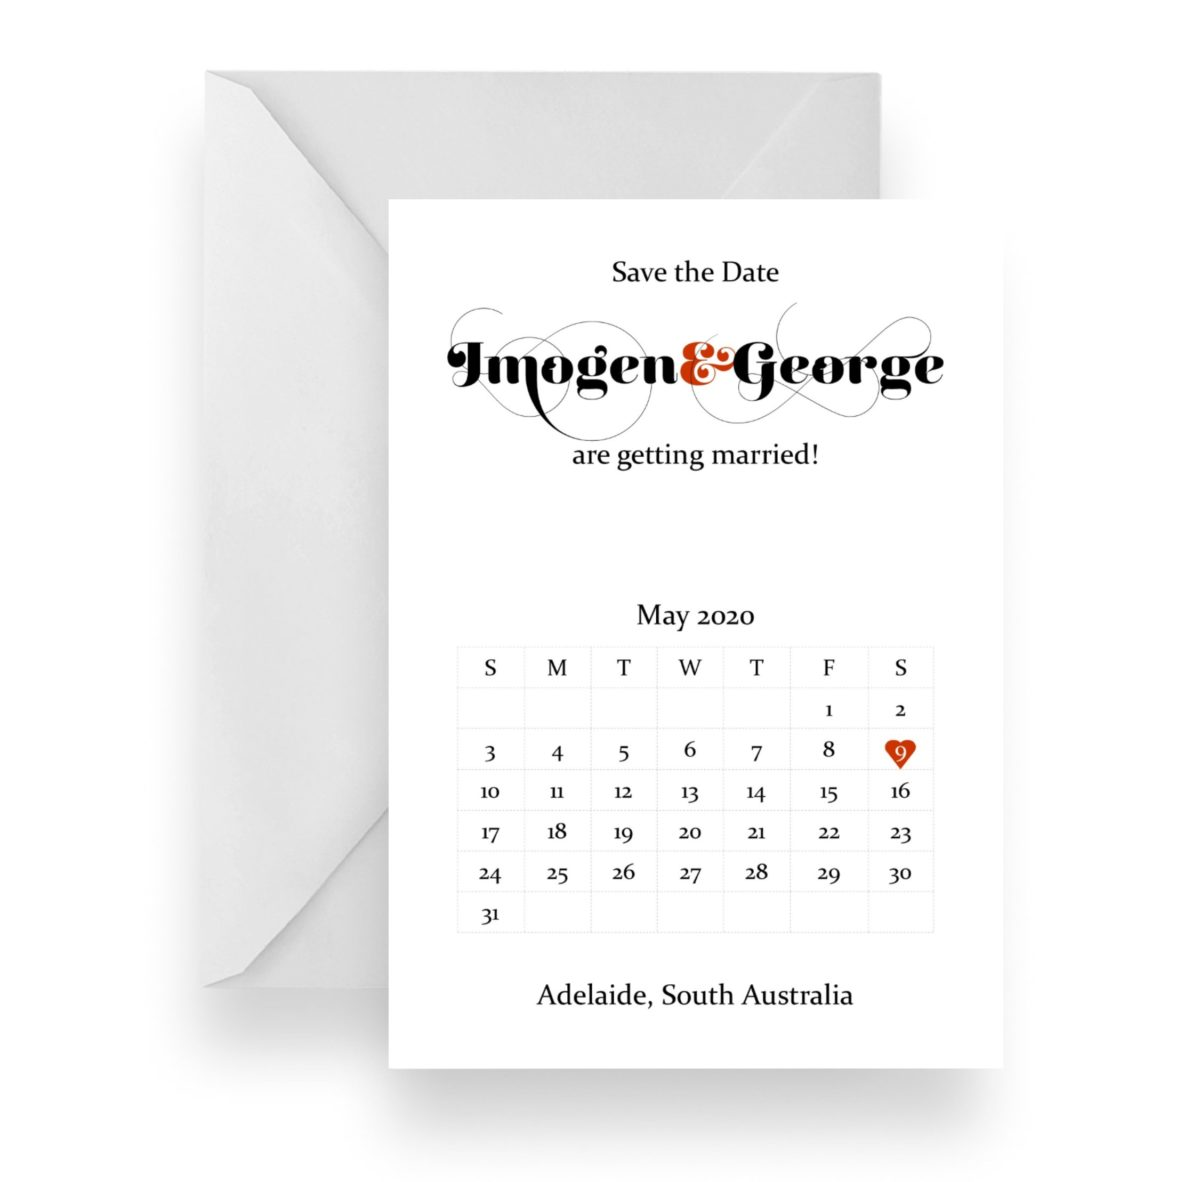 035 Imogen & George calander save the date